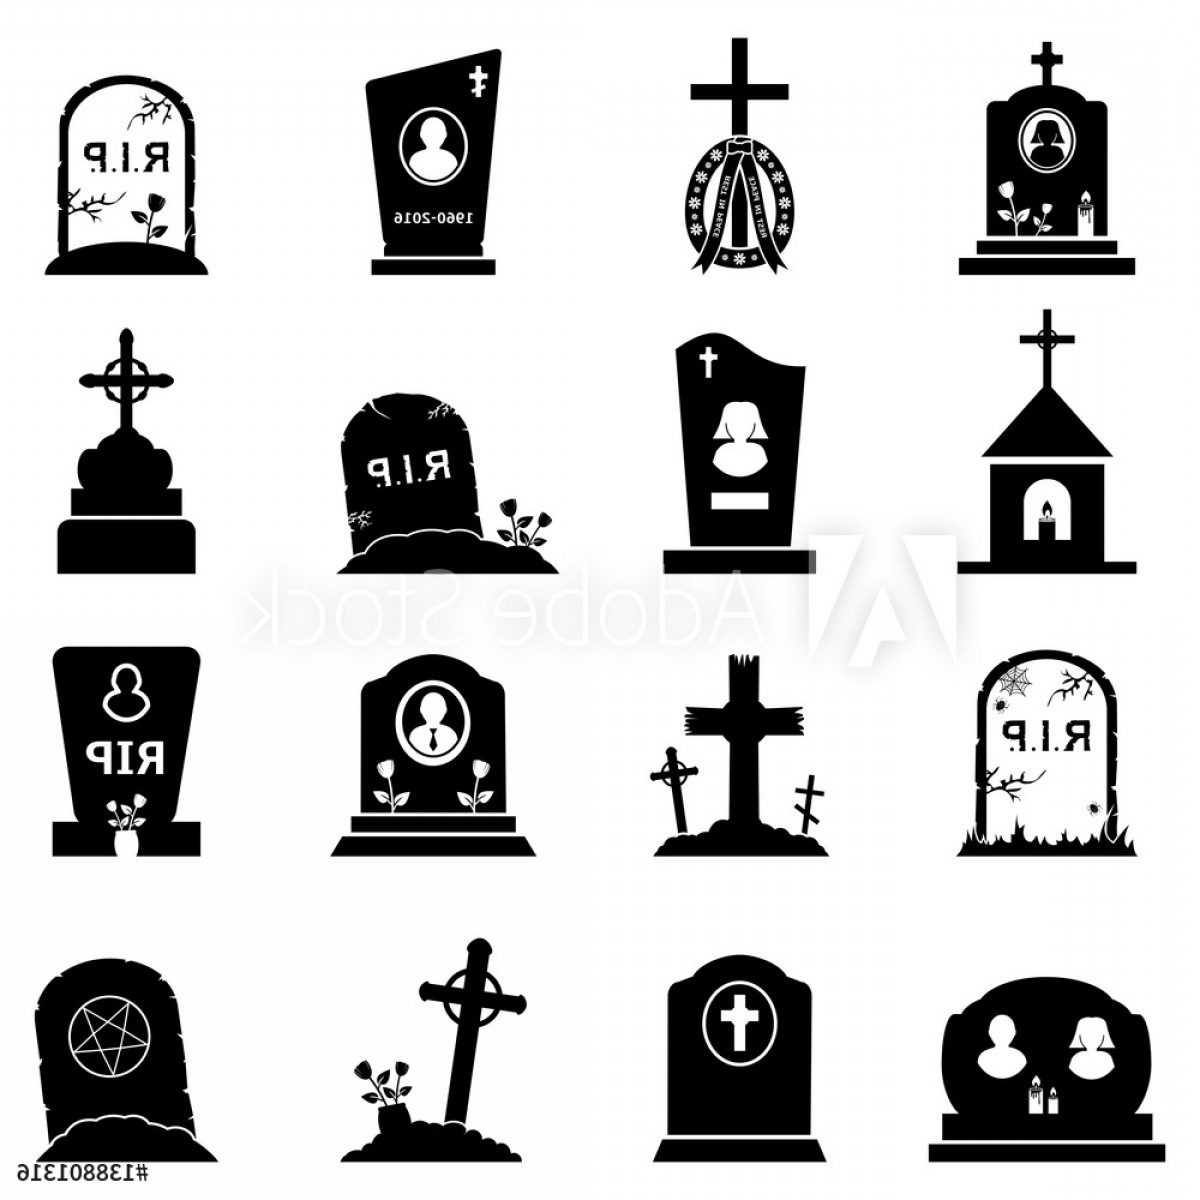 Gravestone Black And Whit Vector JPEG: Abstract Vector Set Of Gravestones And Tombstones Icons On A White Background F